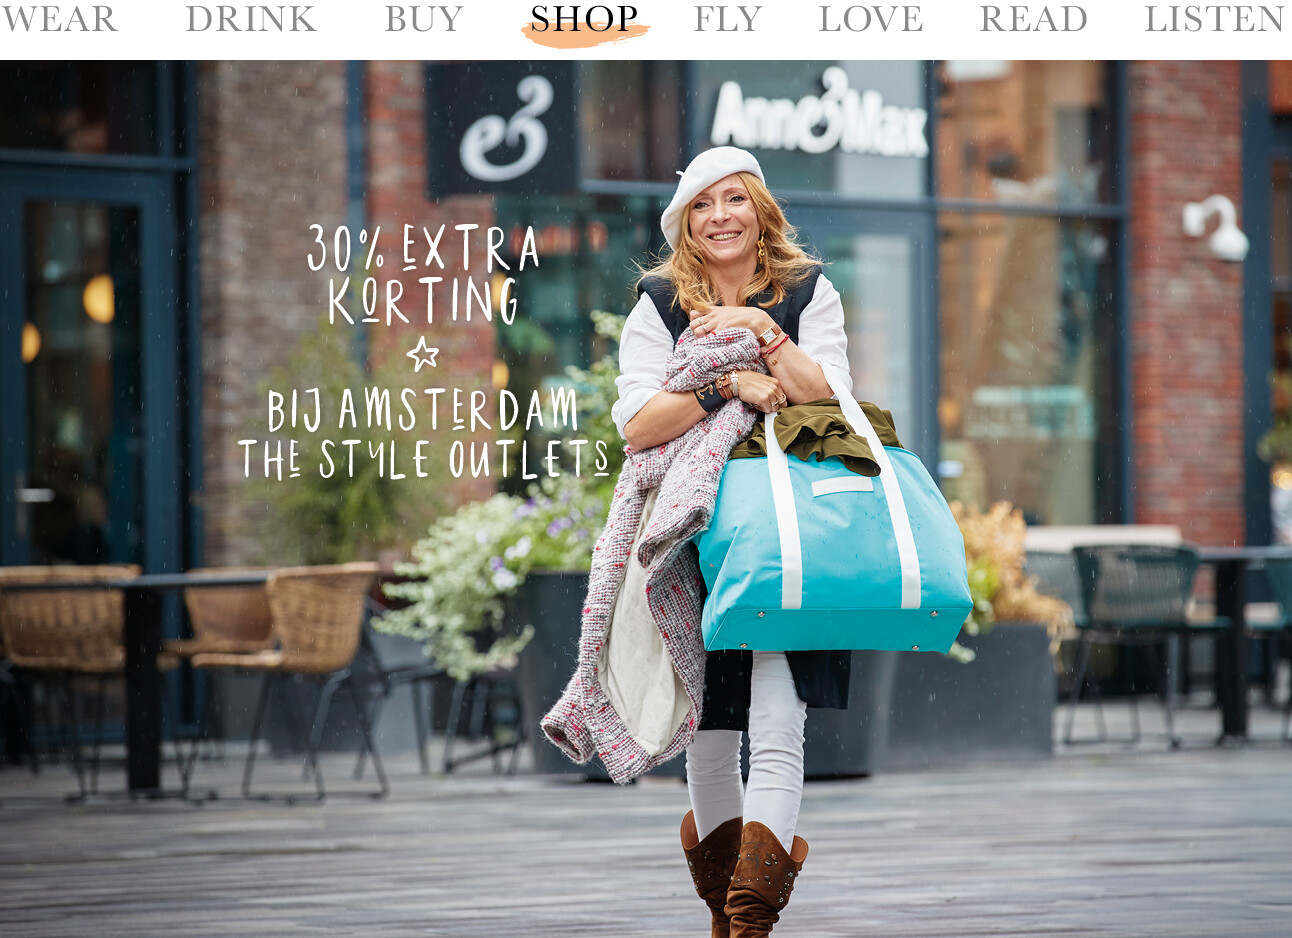 May shoppen bij Amsterdam The Style oulets